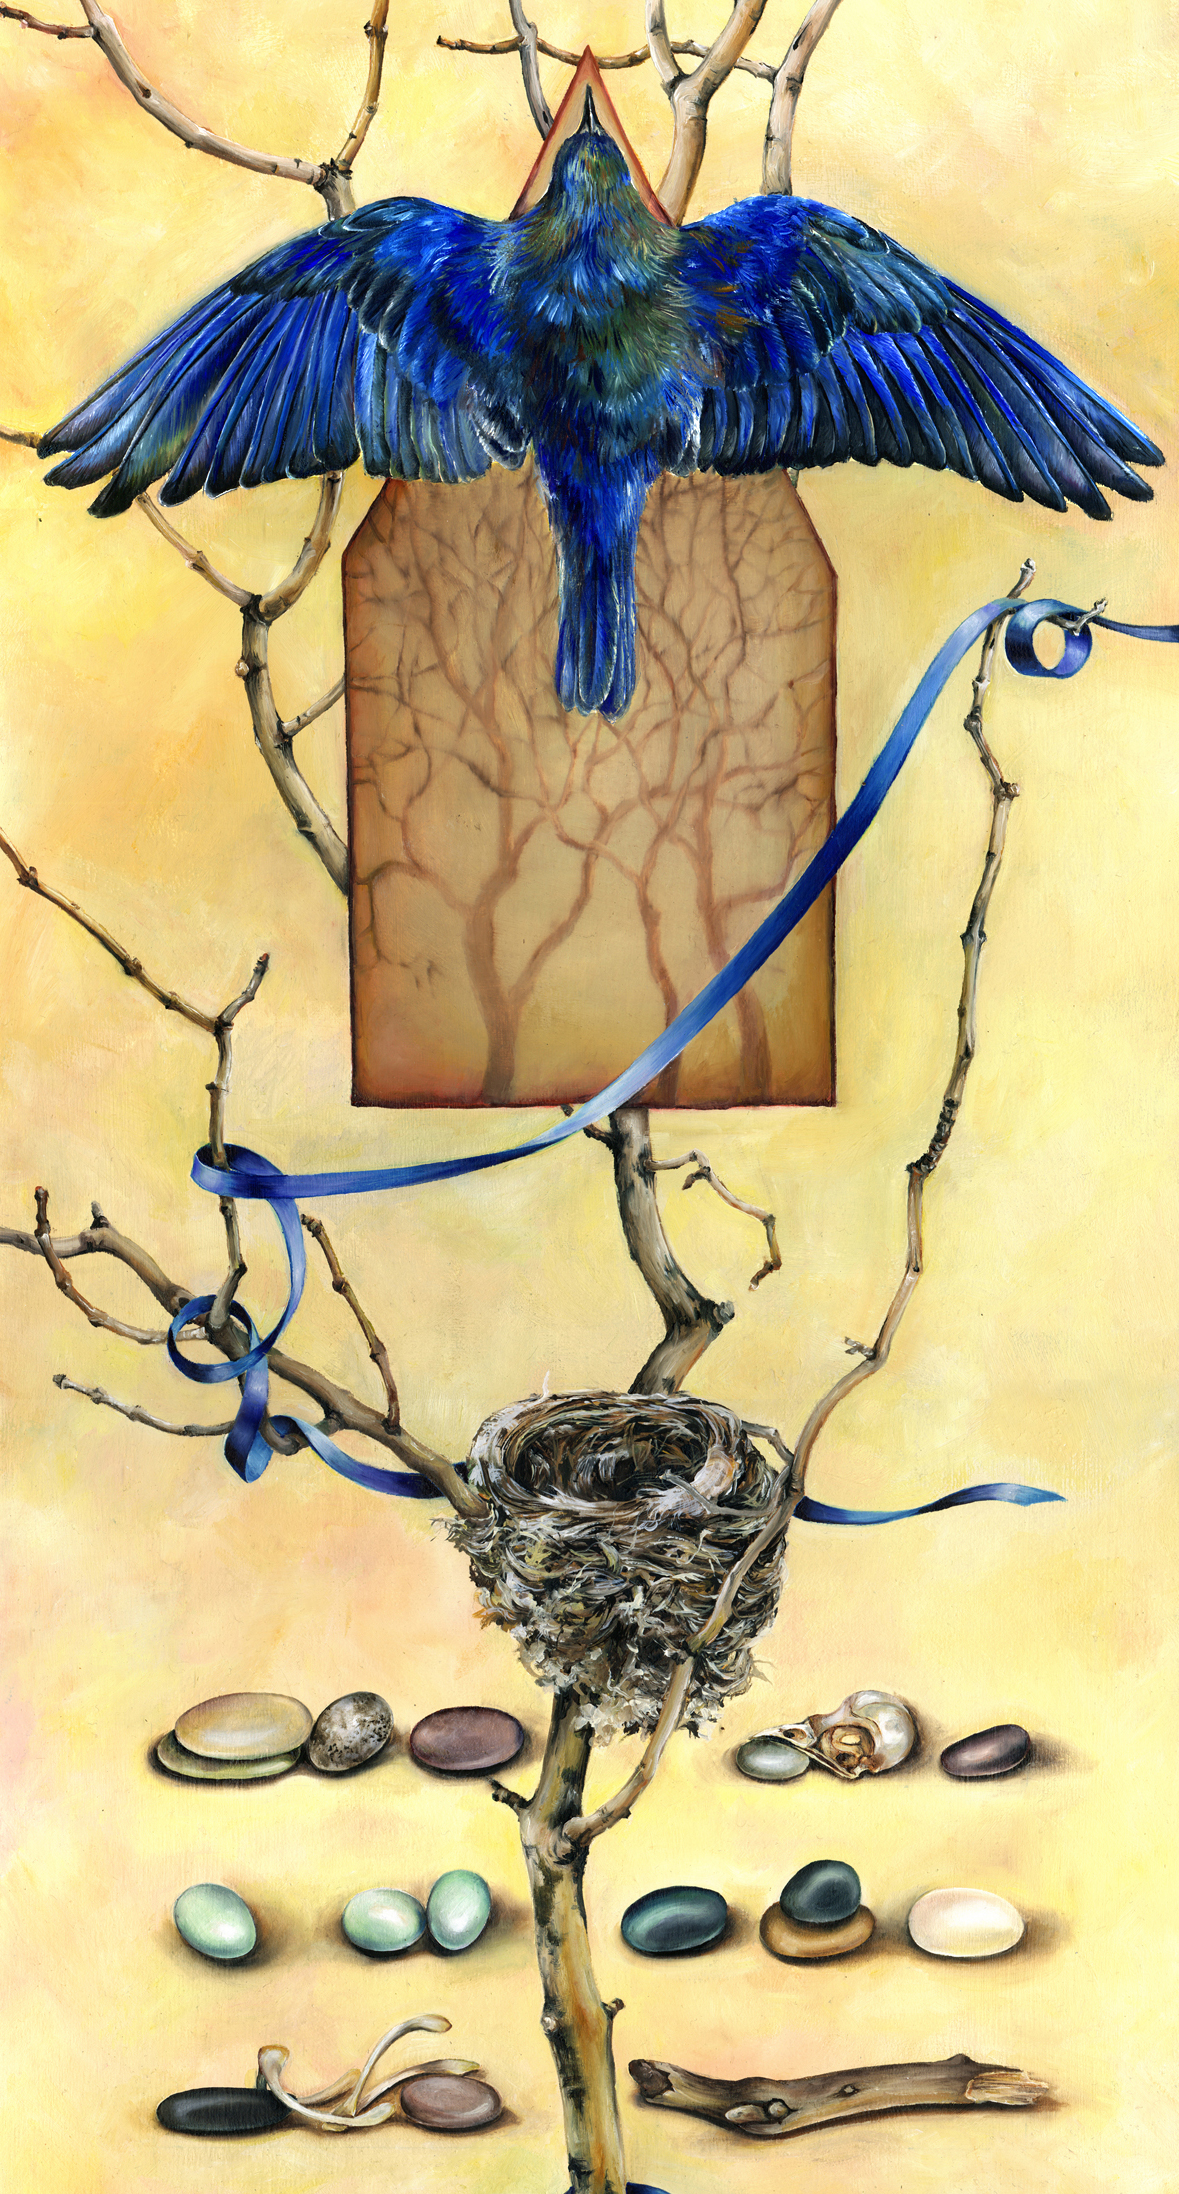 11.010 -- cathy weber - artist - oil painting - montana - woman - egg - stone - art - ribbon - nest